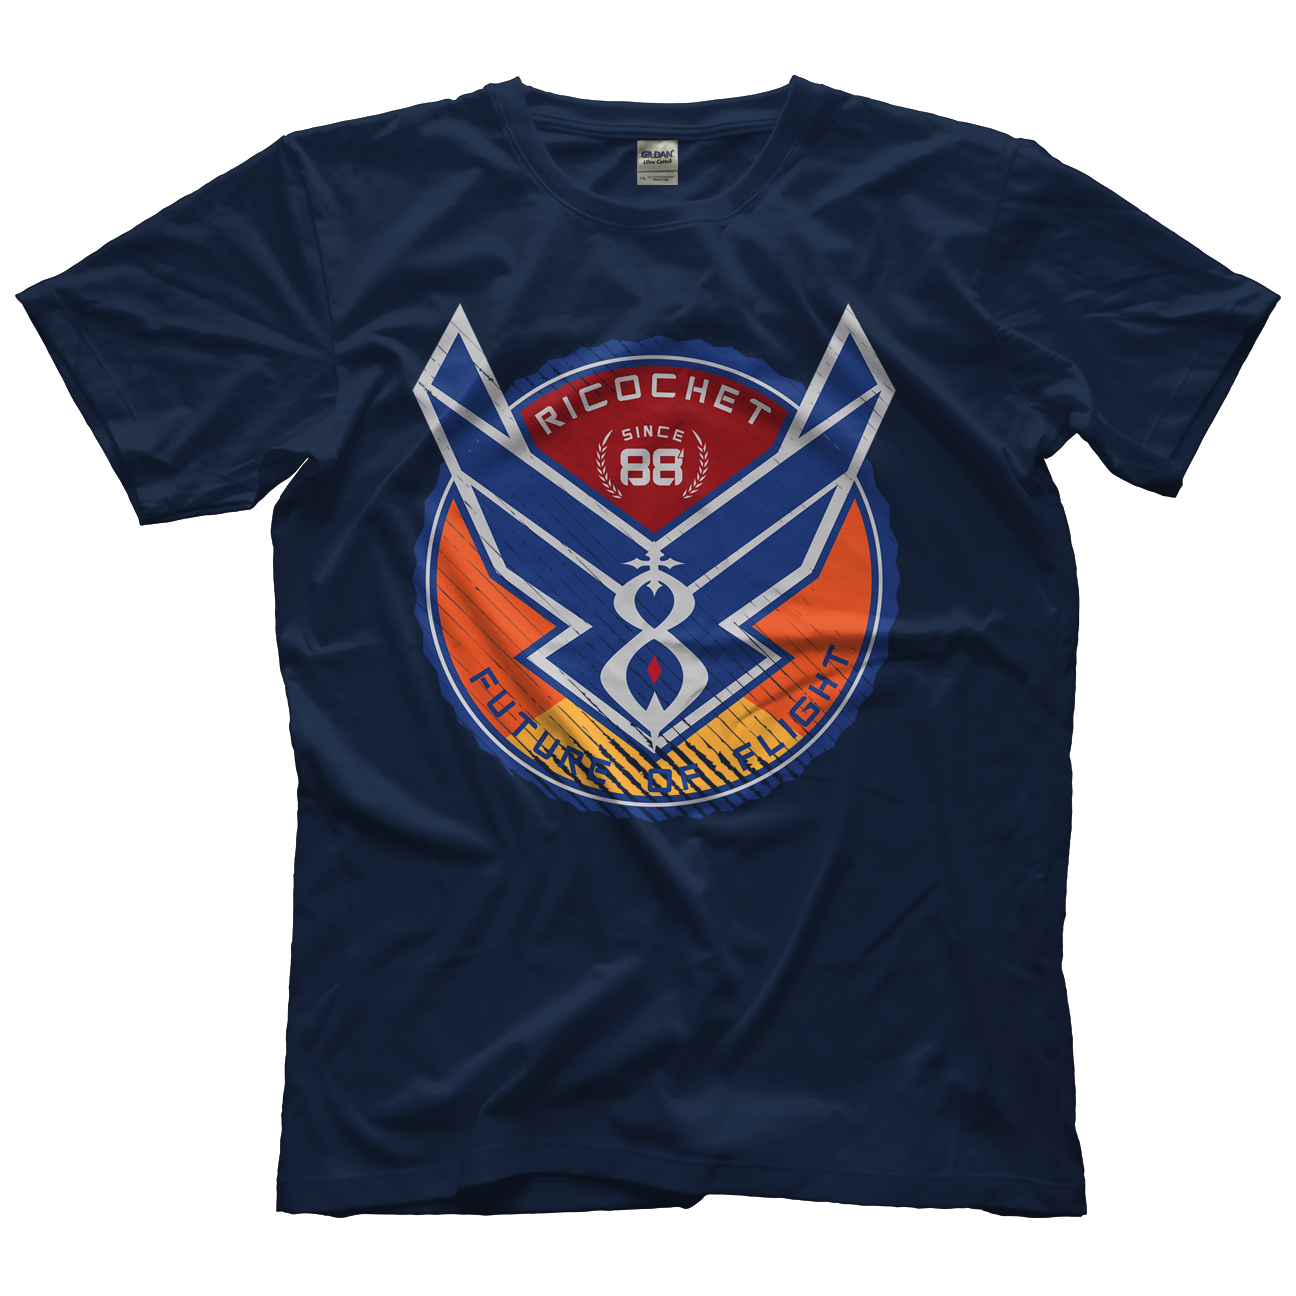 Ricochet Future Of Flight T-shirt